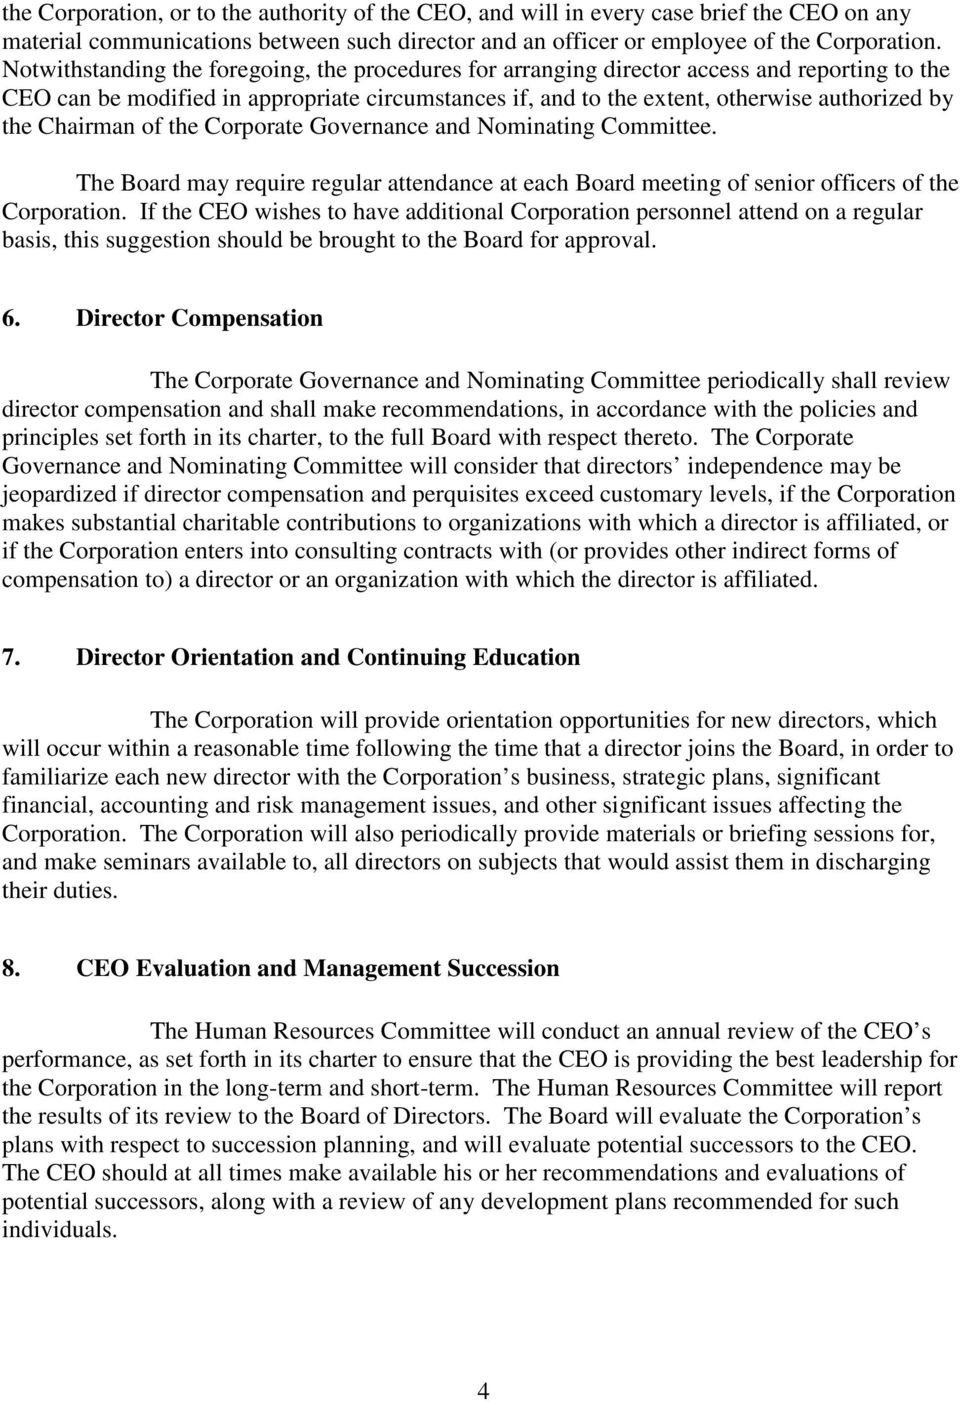 Chairman of the Corporate Governance and Nominating Committee. The Board may require regular attendance at each Board meeting of senior officers of the Corporation.